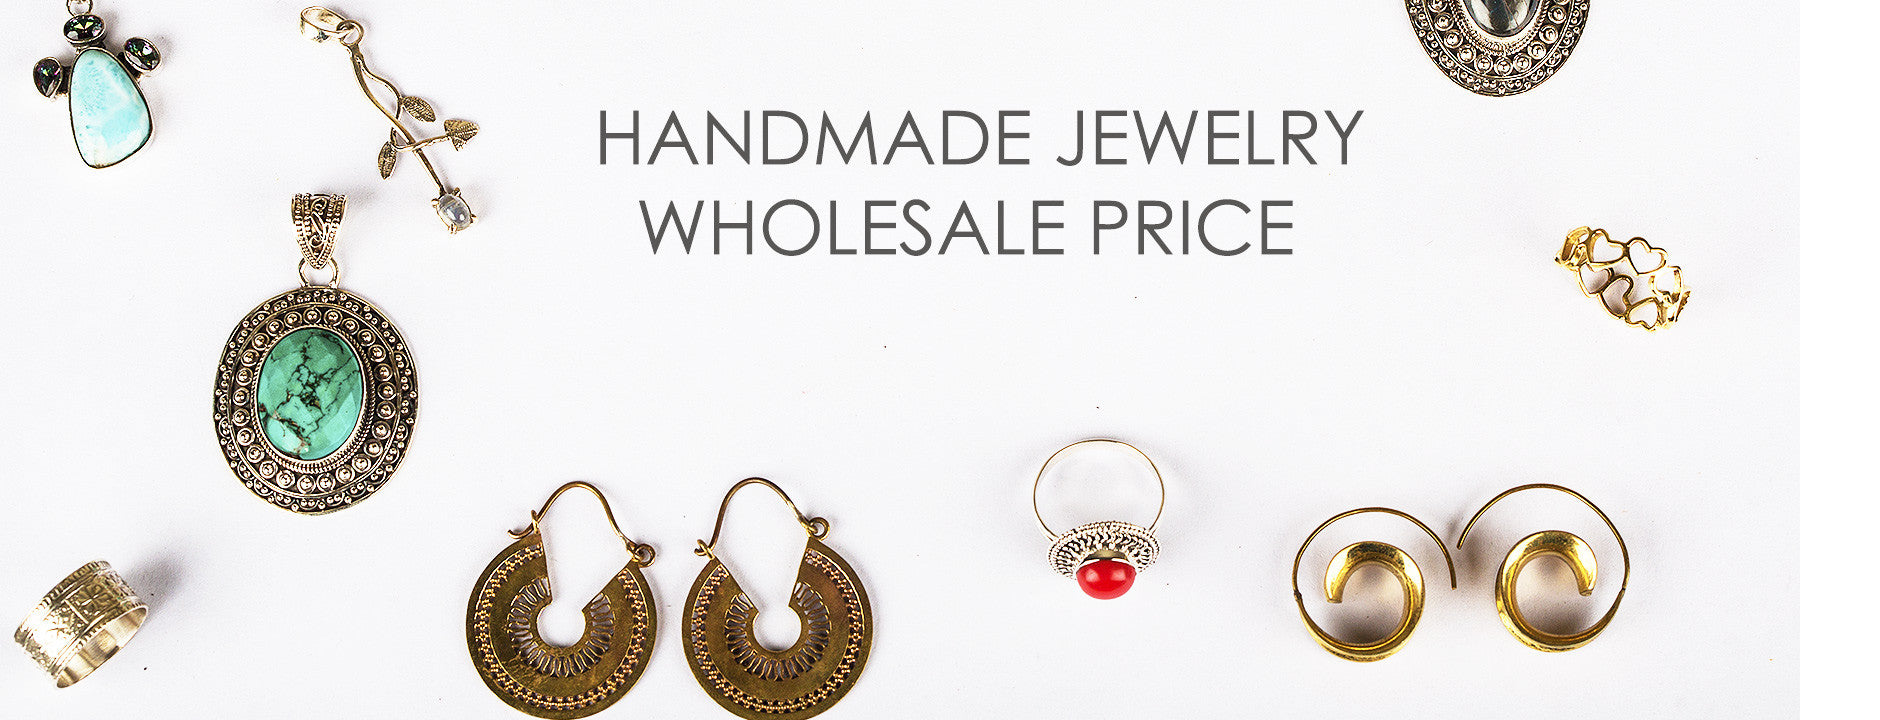 Homemade Jewelry Whole sale Price